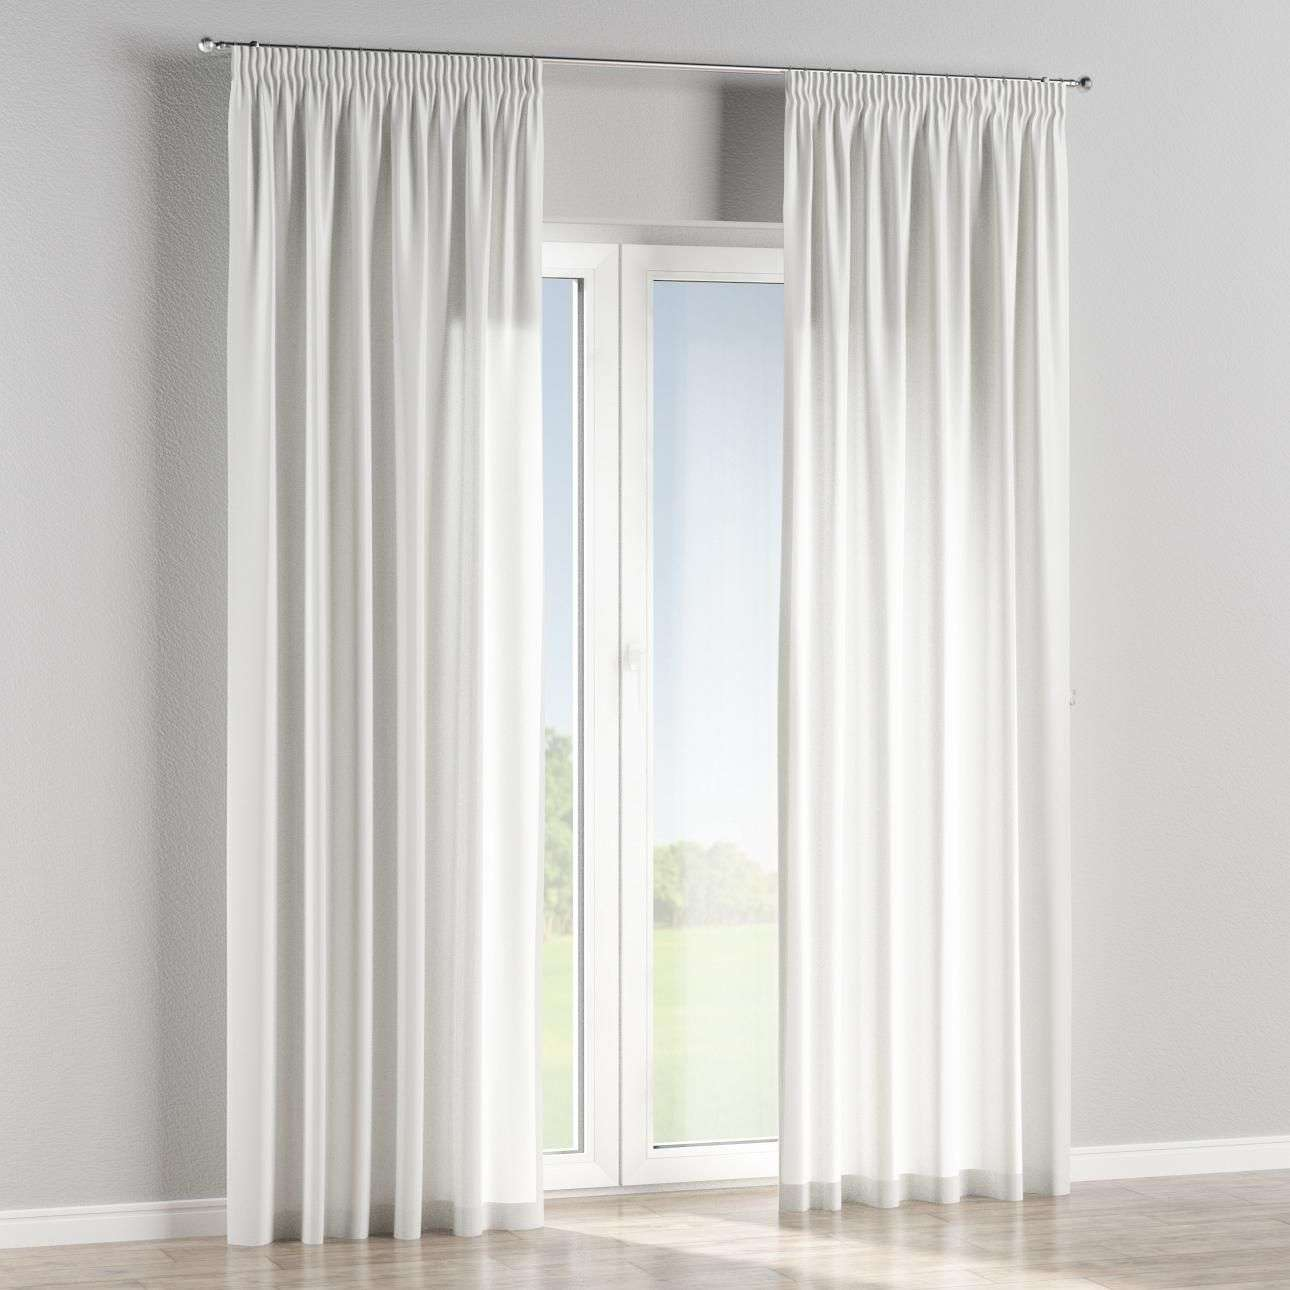 Pencil pleat curtains in collection SALE, fabric: 142-08